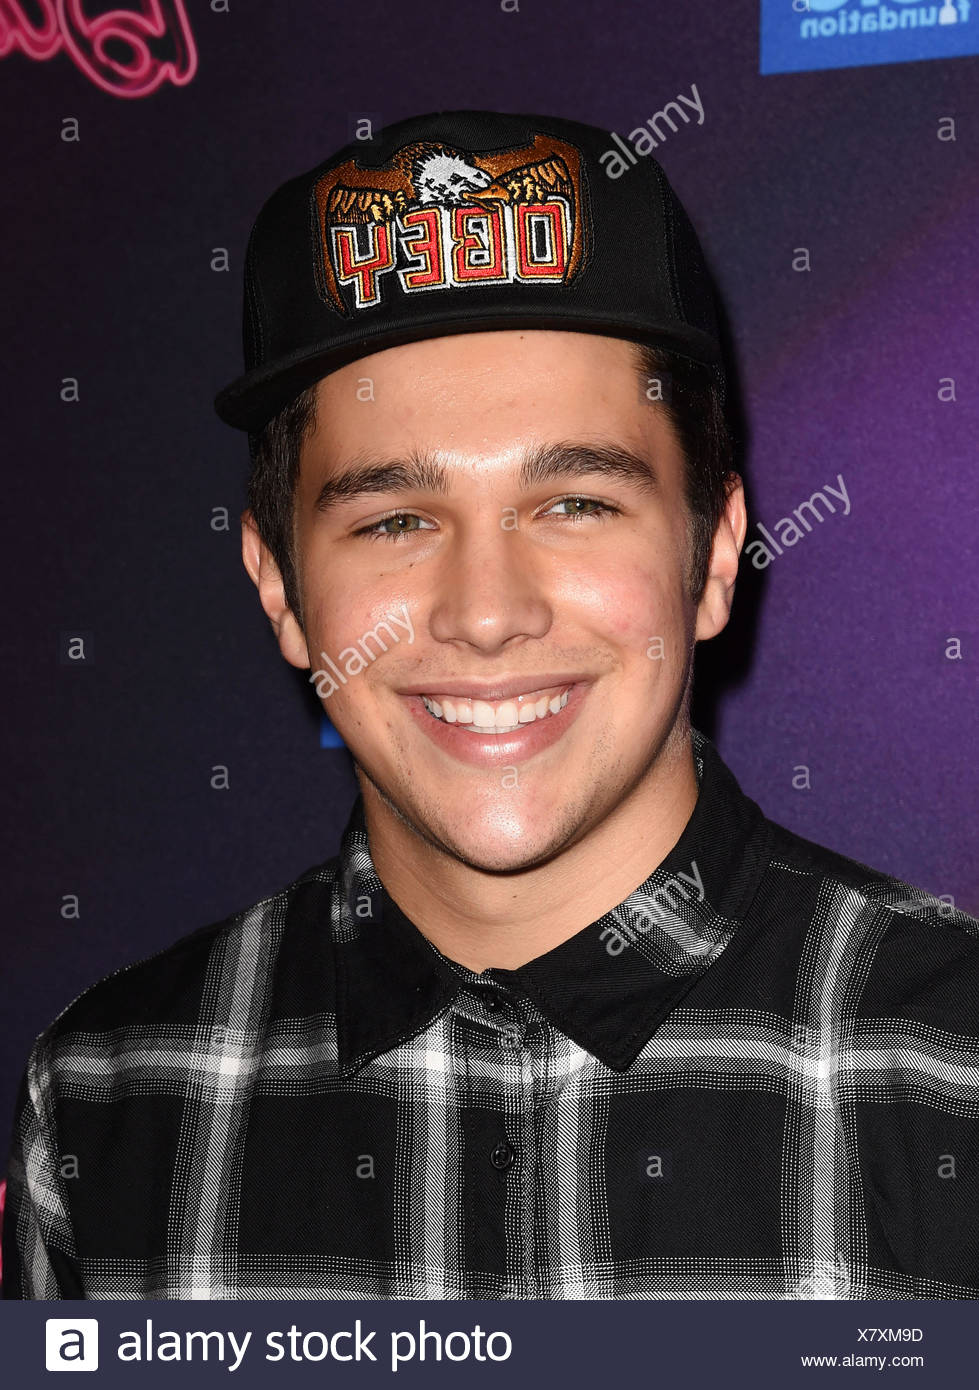 Musician Austin Mahone attends the Barbie Rock 'N Royals Concert Experience at the Hollywood Palladium on September 26, 2015 in Los Angeles, California., Additional-Rights-Clearances-NA - Stock Image